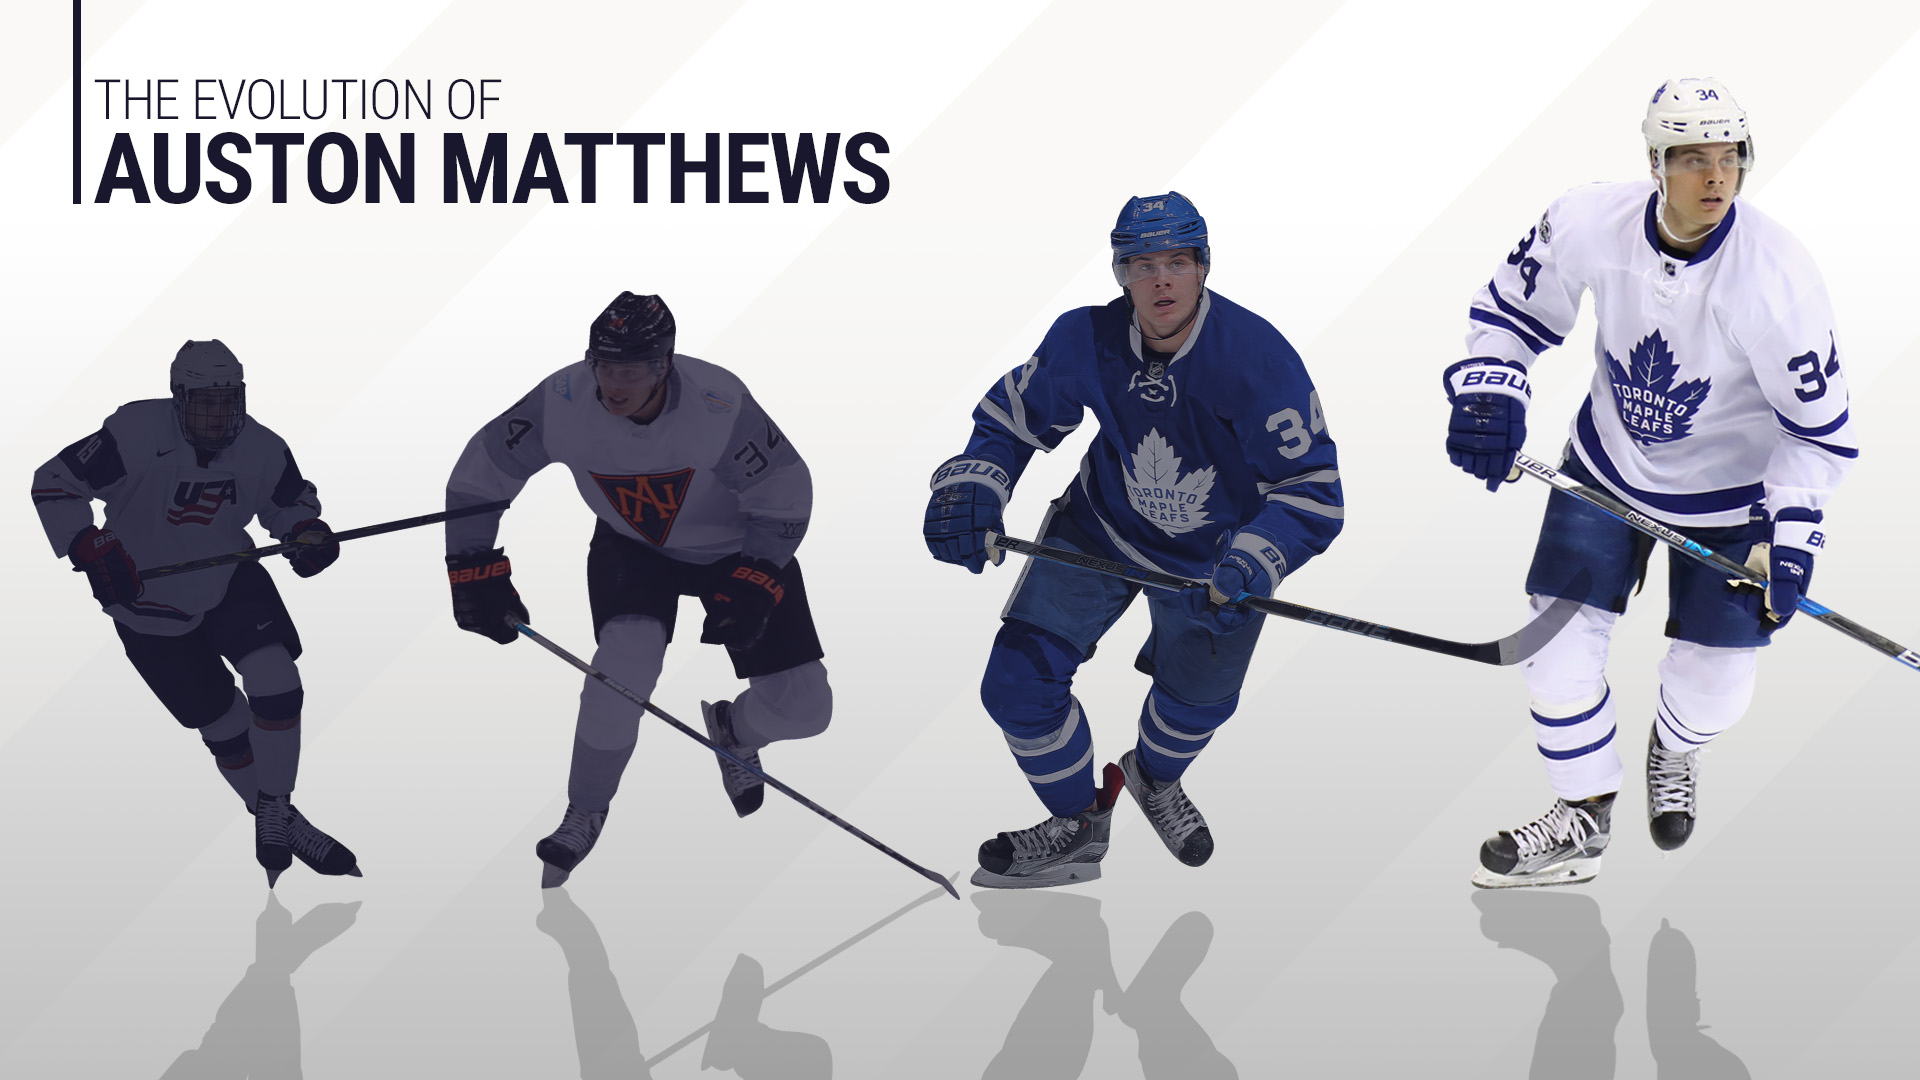 The evolution of Auston Matthews